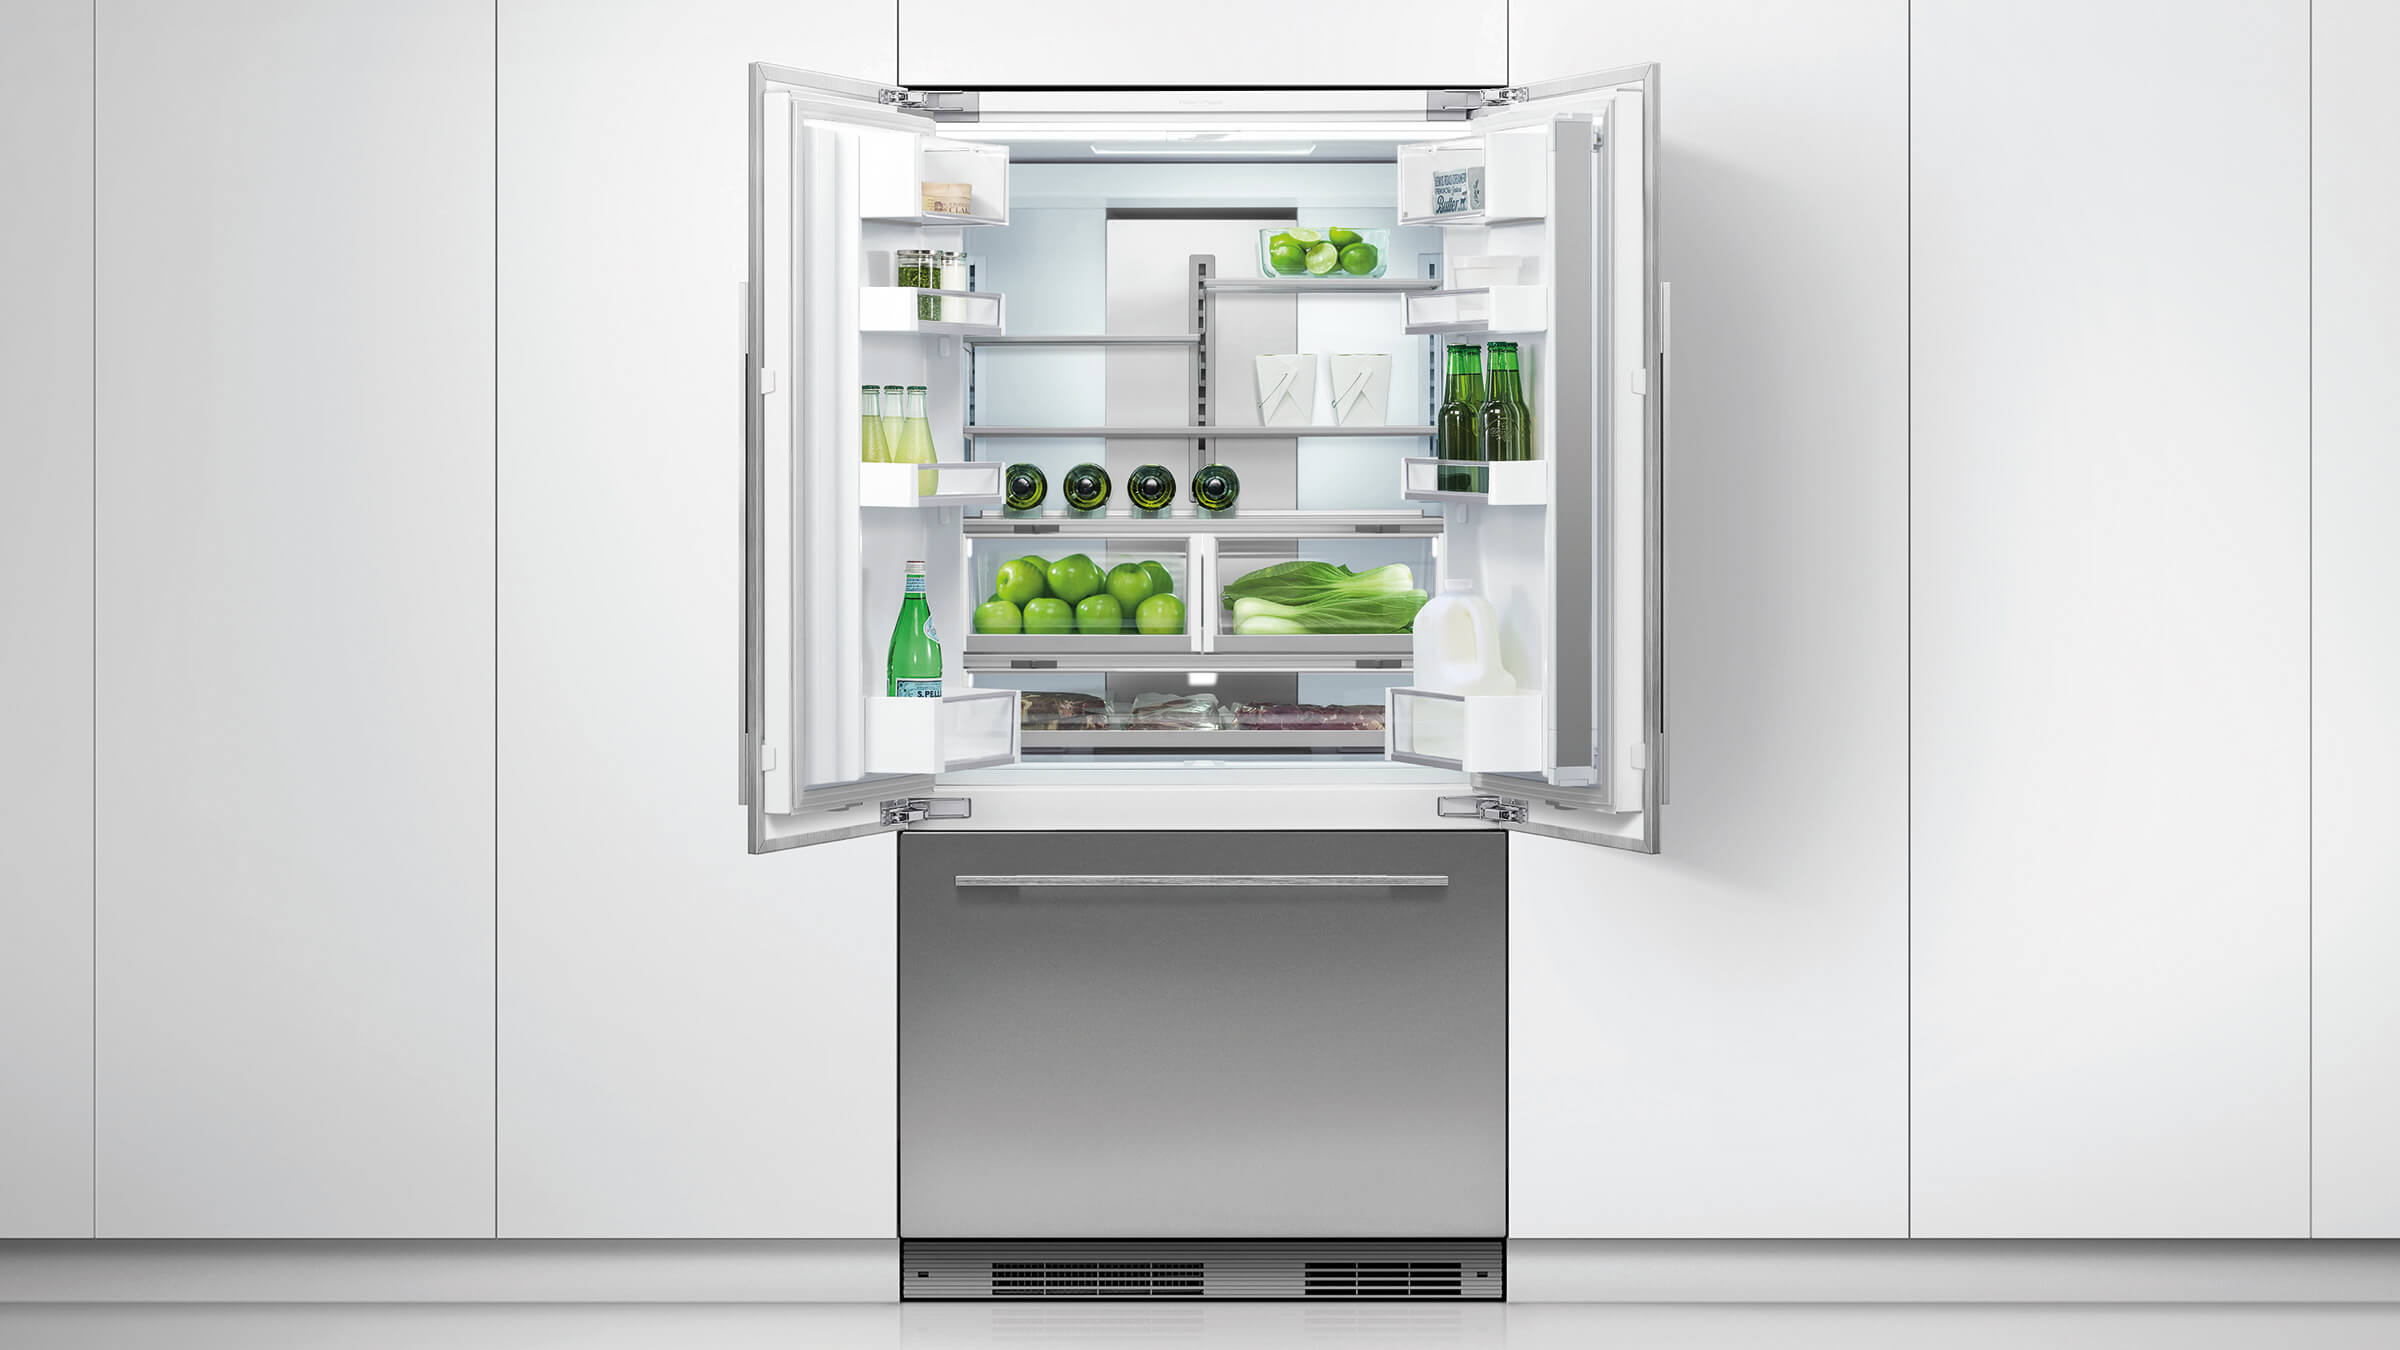 Fisher and paykel french door fridge reviews - Flexible Living